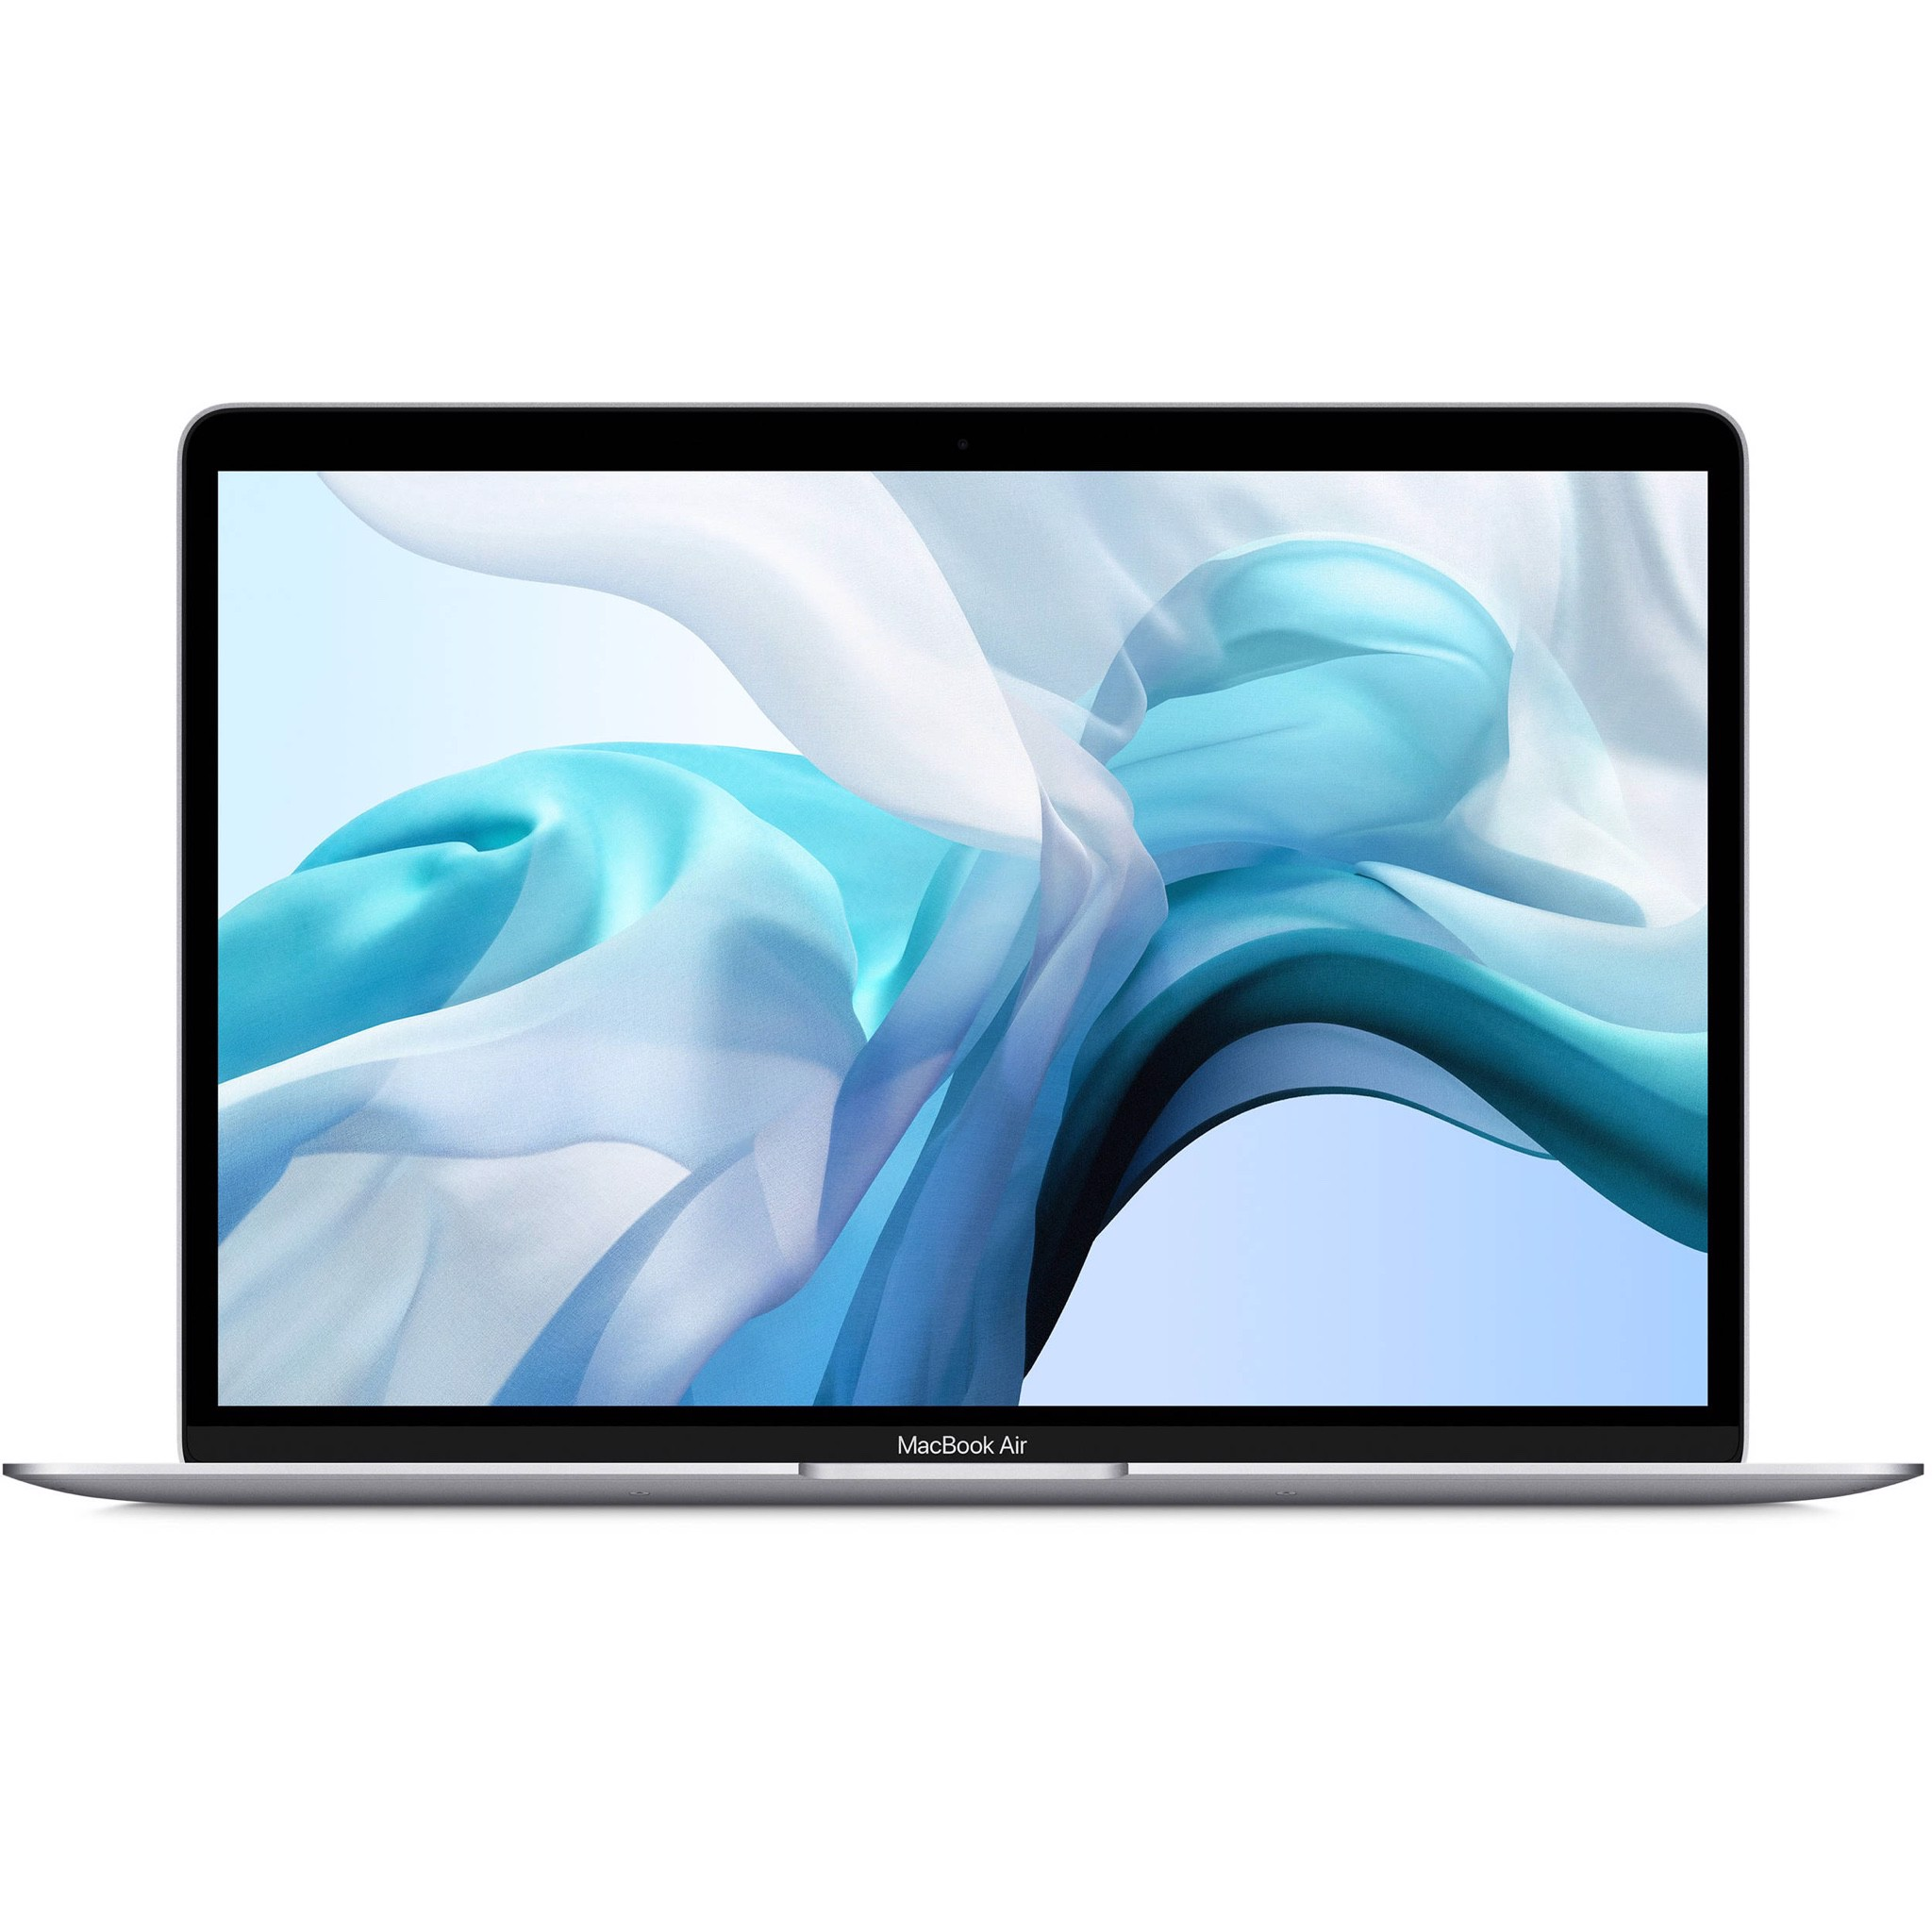 MWTK2 - MACBOOK AIR 2020 NEW 100%